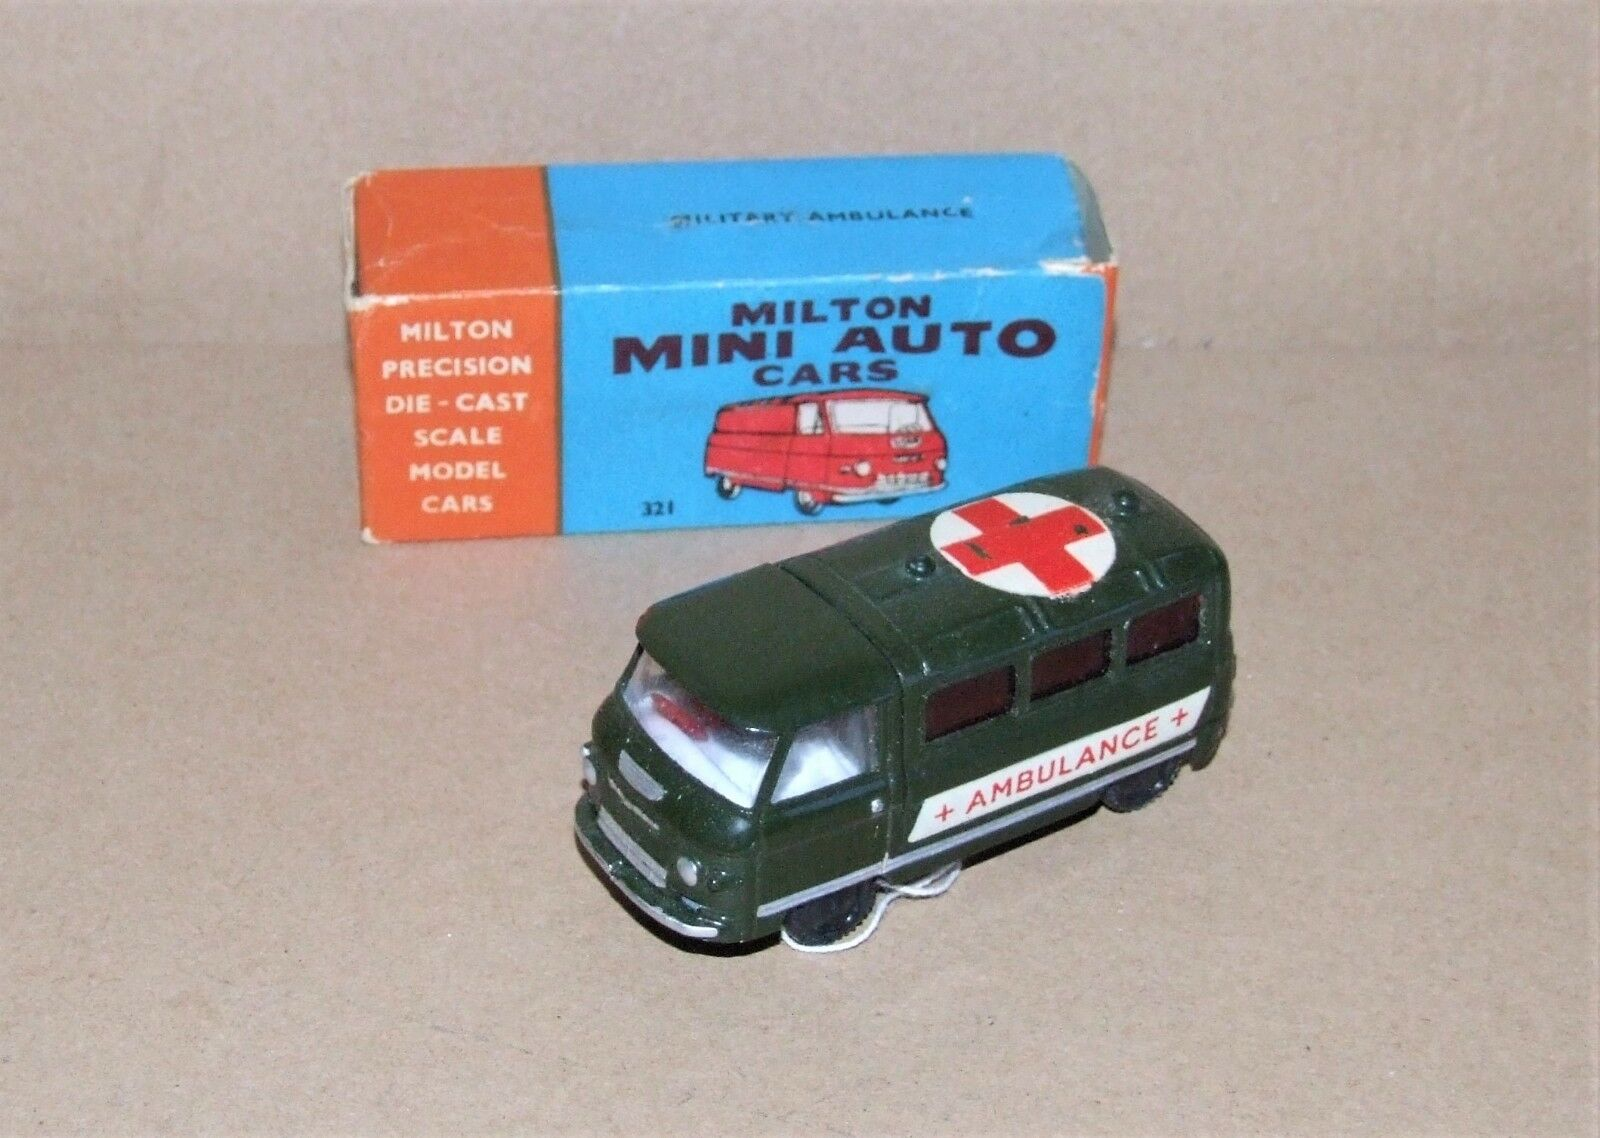 Milton (Inde) Mini Auto CARS 321 ambulance militaire